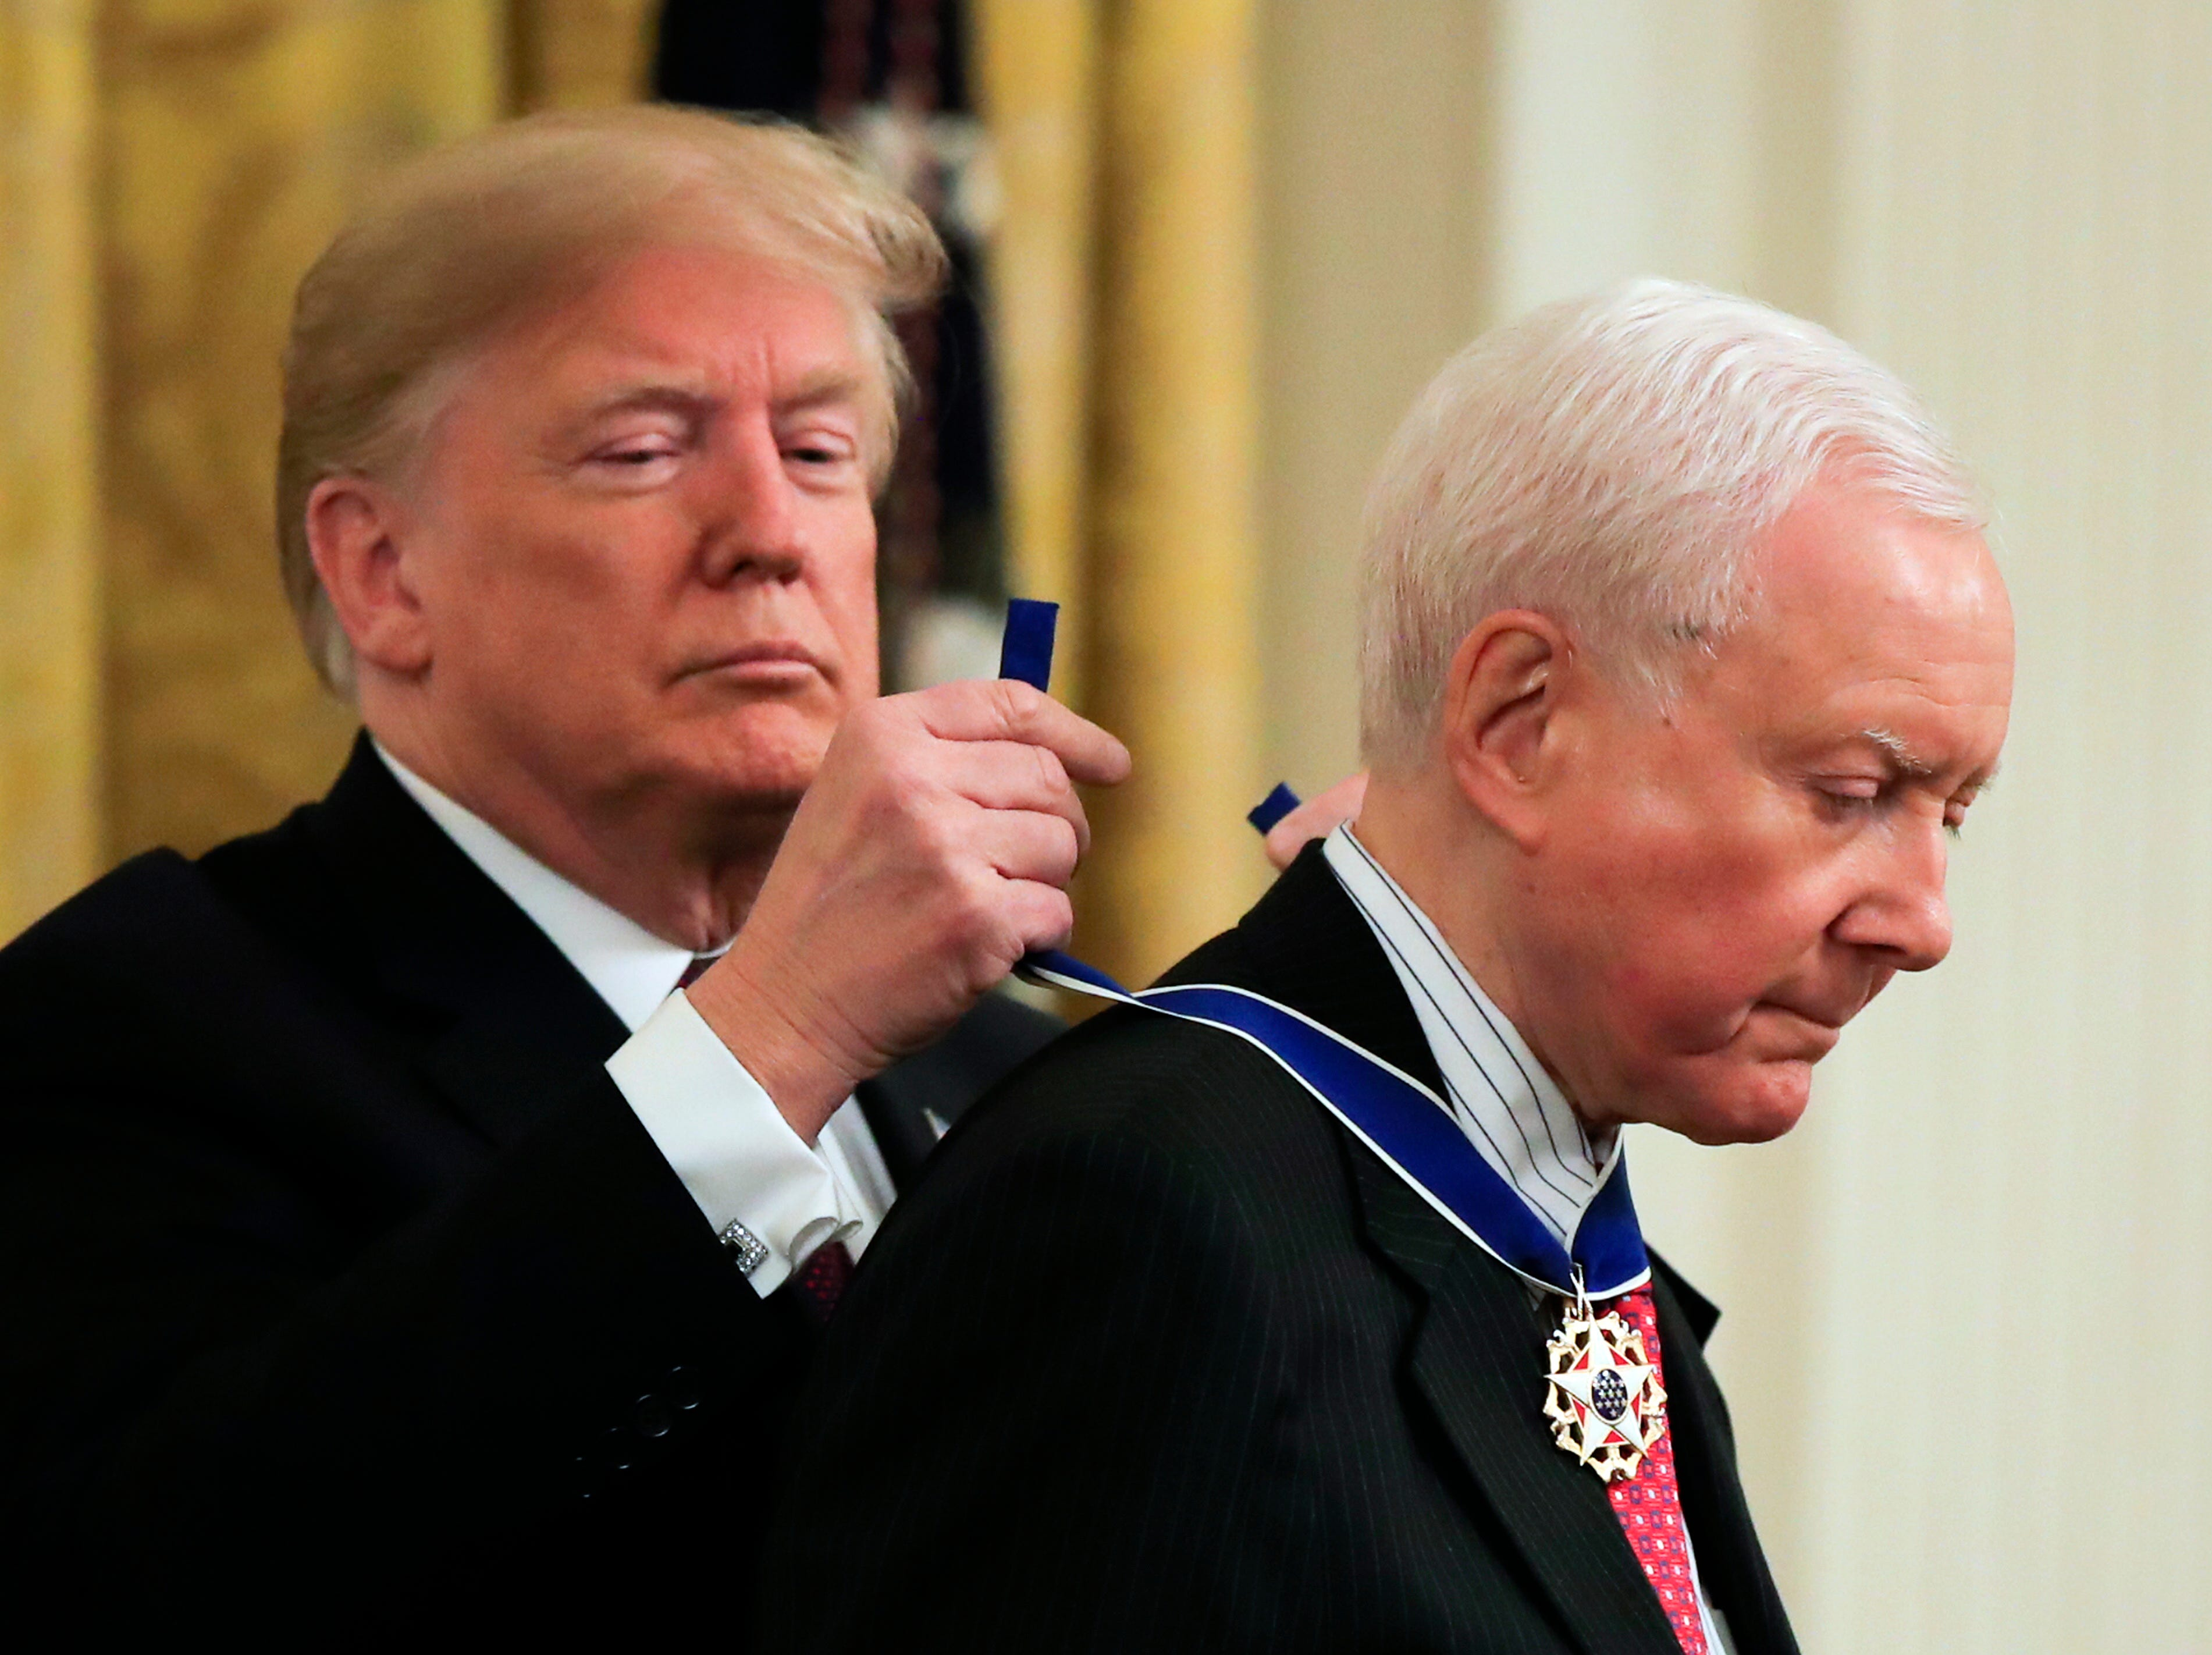 President Donald Trump presents the Presidential Medal of Freedom to U.S. Sen. Orrin Hatch, R-Utah during a ceremony in the East Room of the White House, in Washington, D.C., on Friday, Nov. 16, 2018.